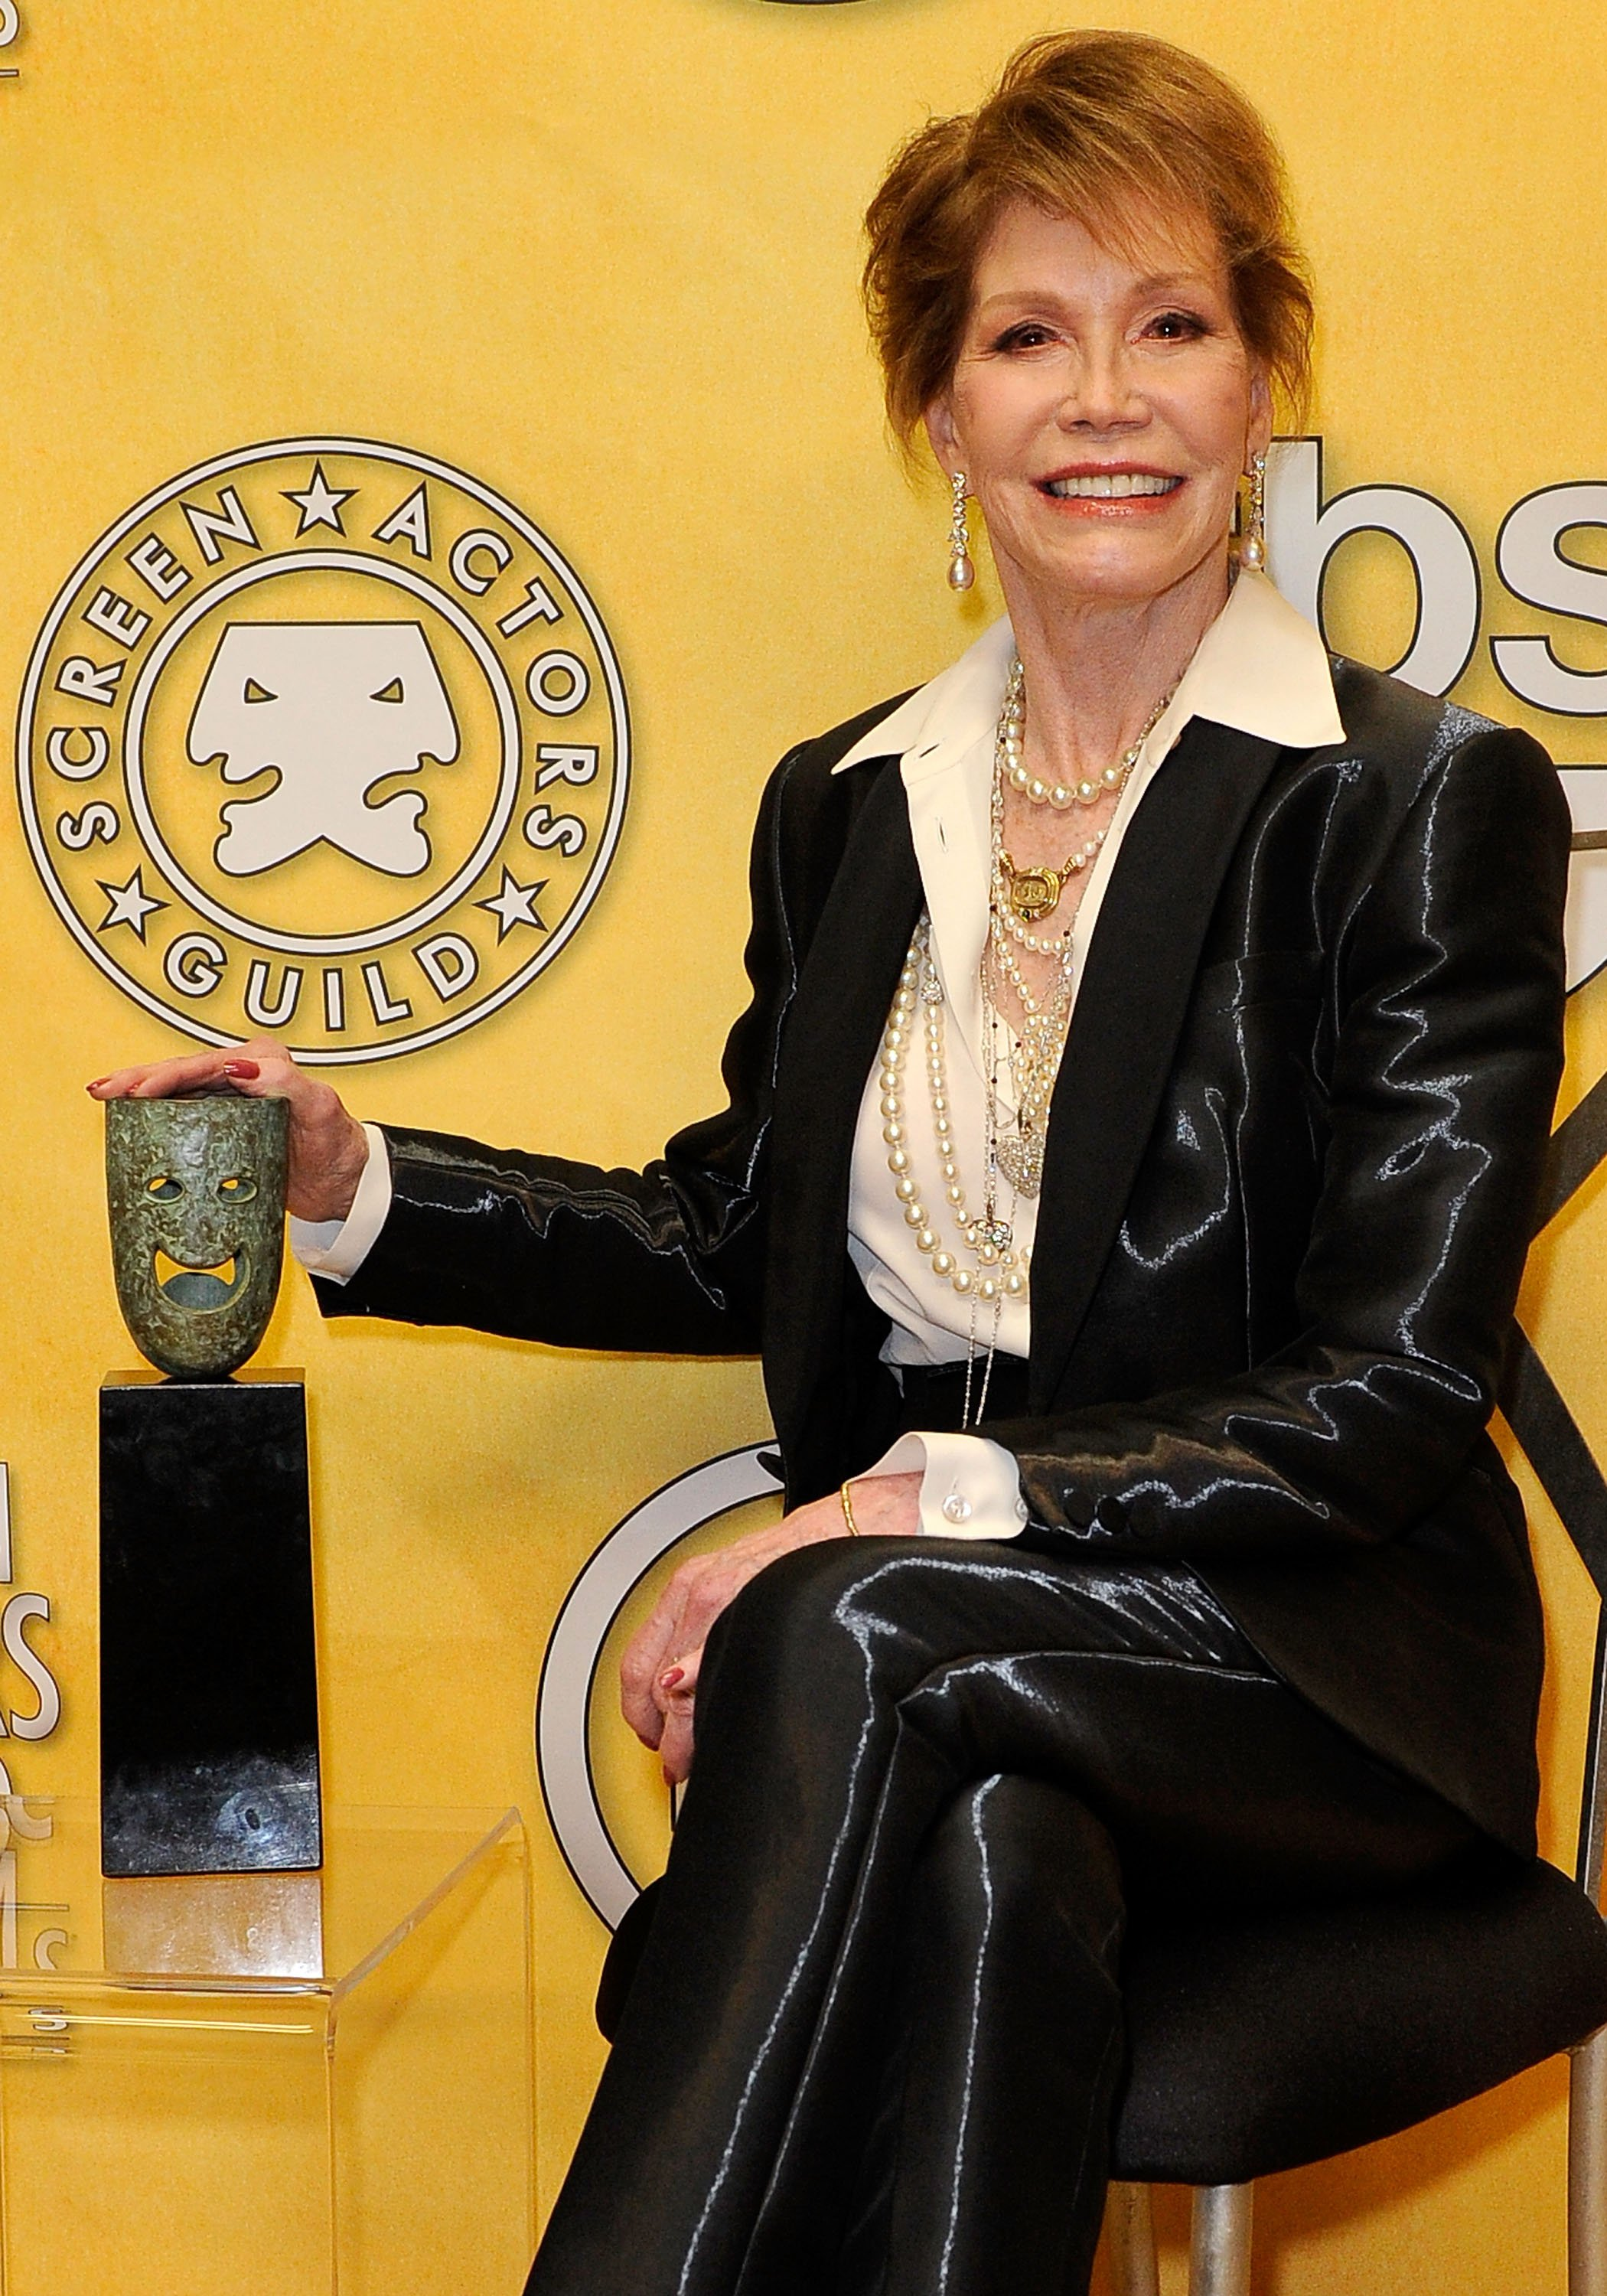 Actress Mary Tyler Moore poses with her Life Achievement Award from the Screen Actors Guild backstage at the 18th Annual Screen Actors Guild Awards at The Shrine Auditorium on January 29, 2012 in Los Angeles, California. | Source: Getty Images